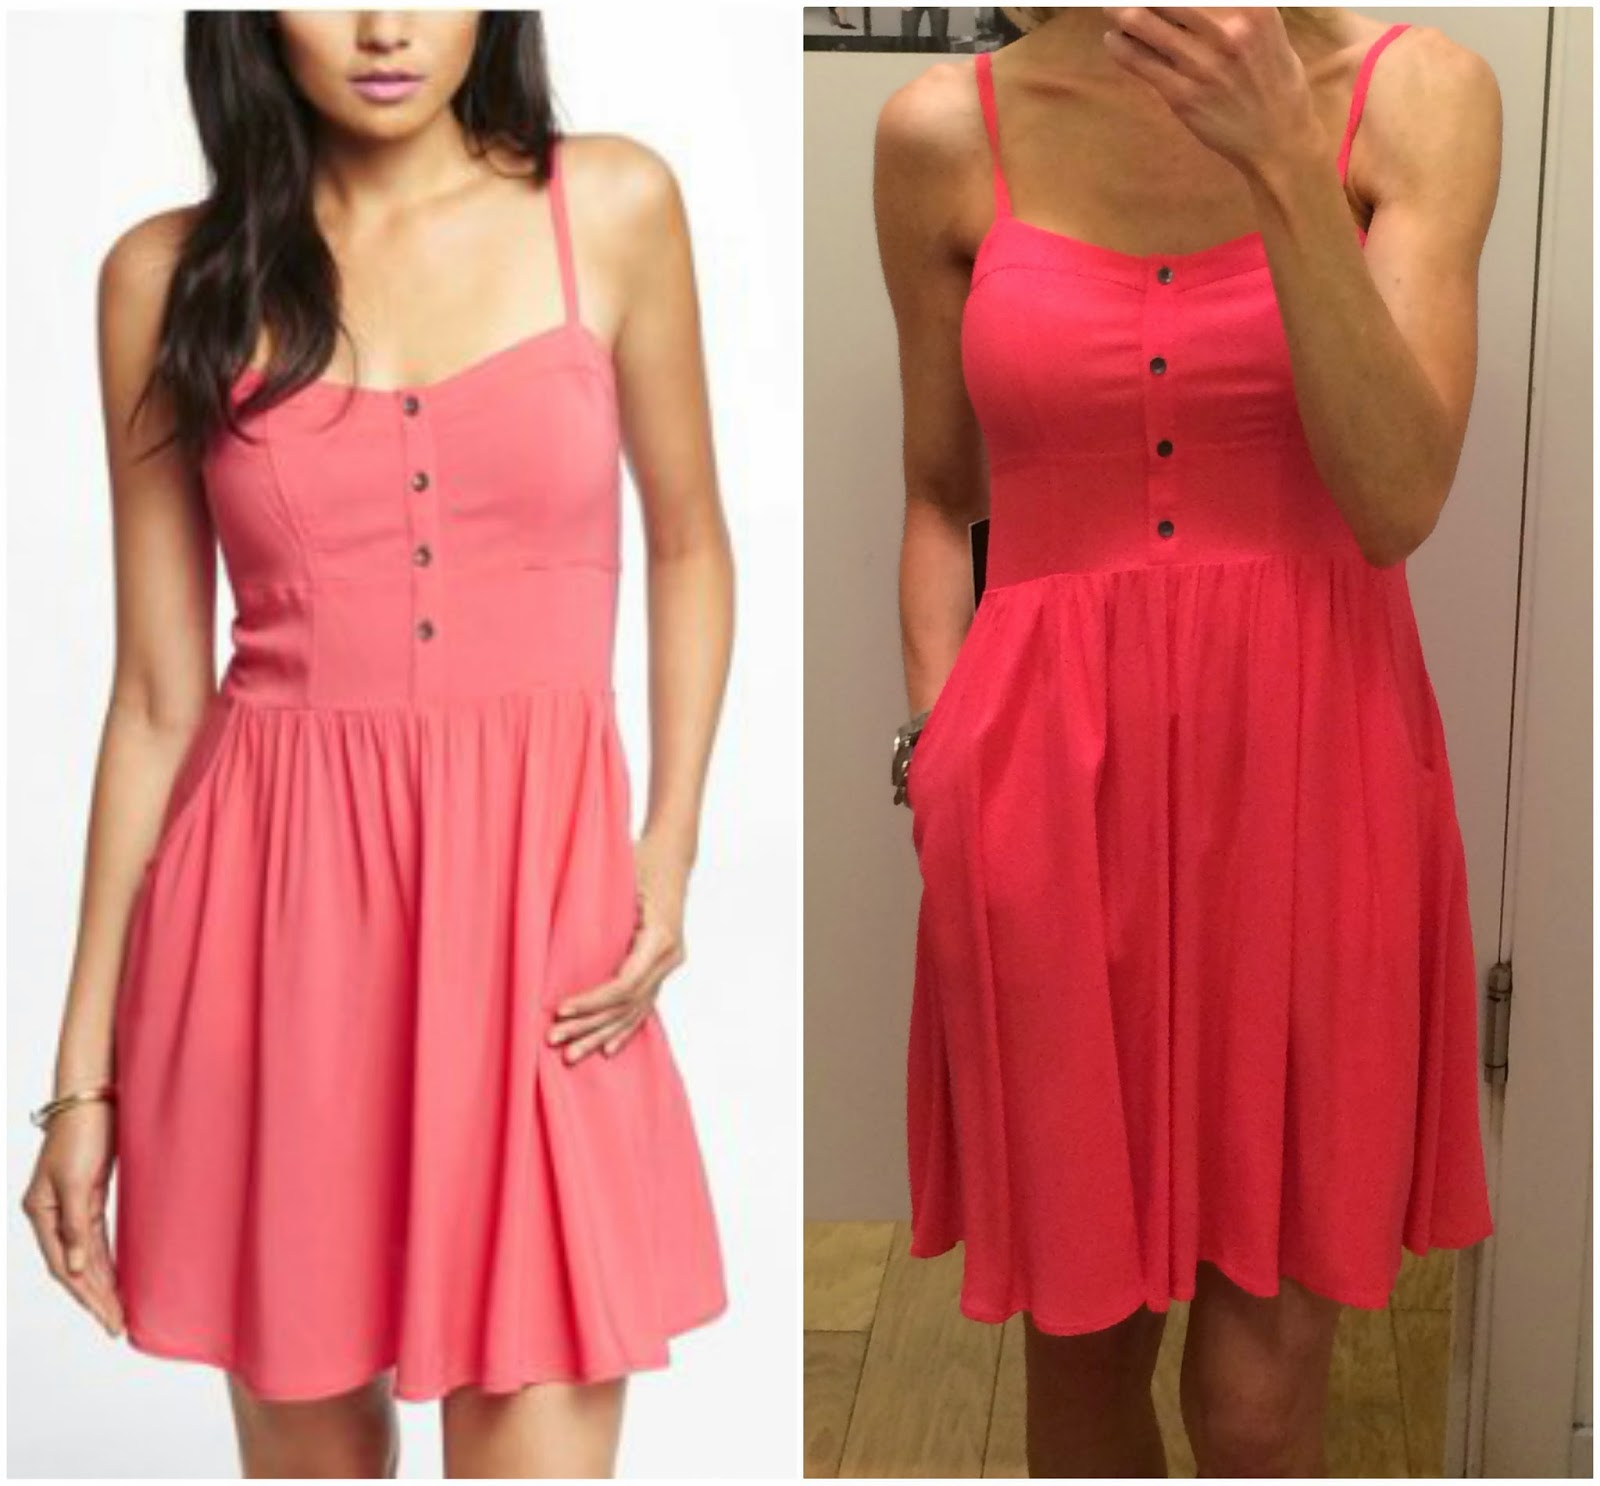 The dress express - Pink Cami Sundress Details Even Though The Top Of This Dress Is A Cami Style Like The Lace Trimmed Romper These Buttons Are Just For Decoration